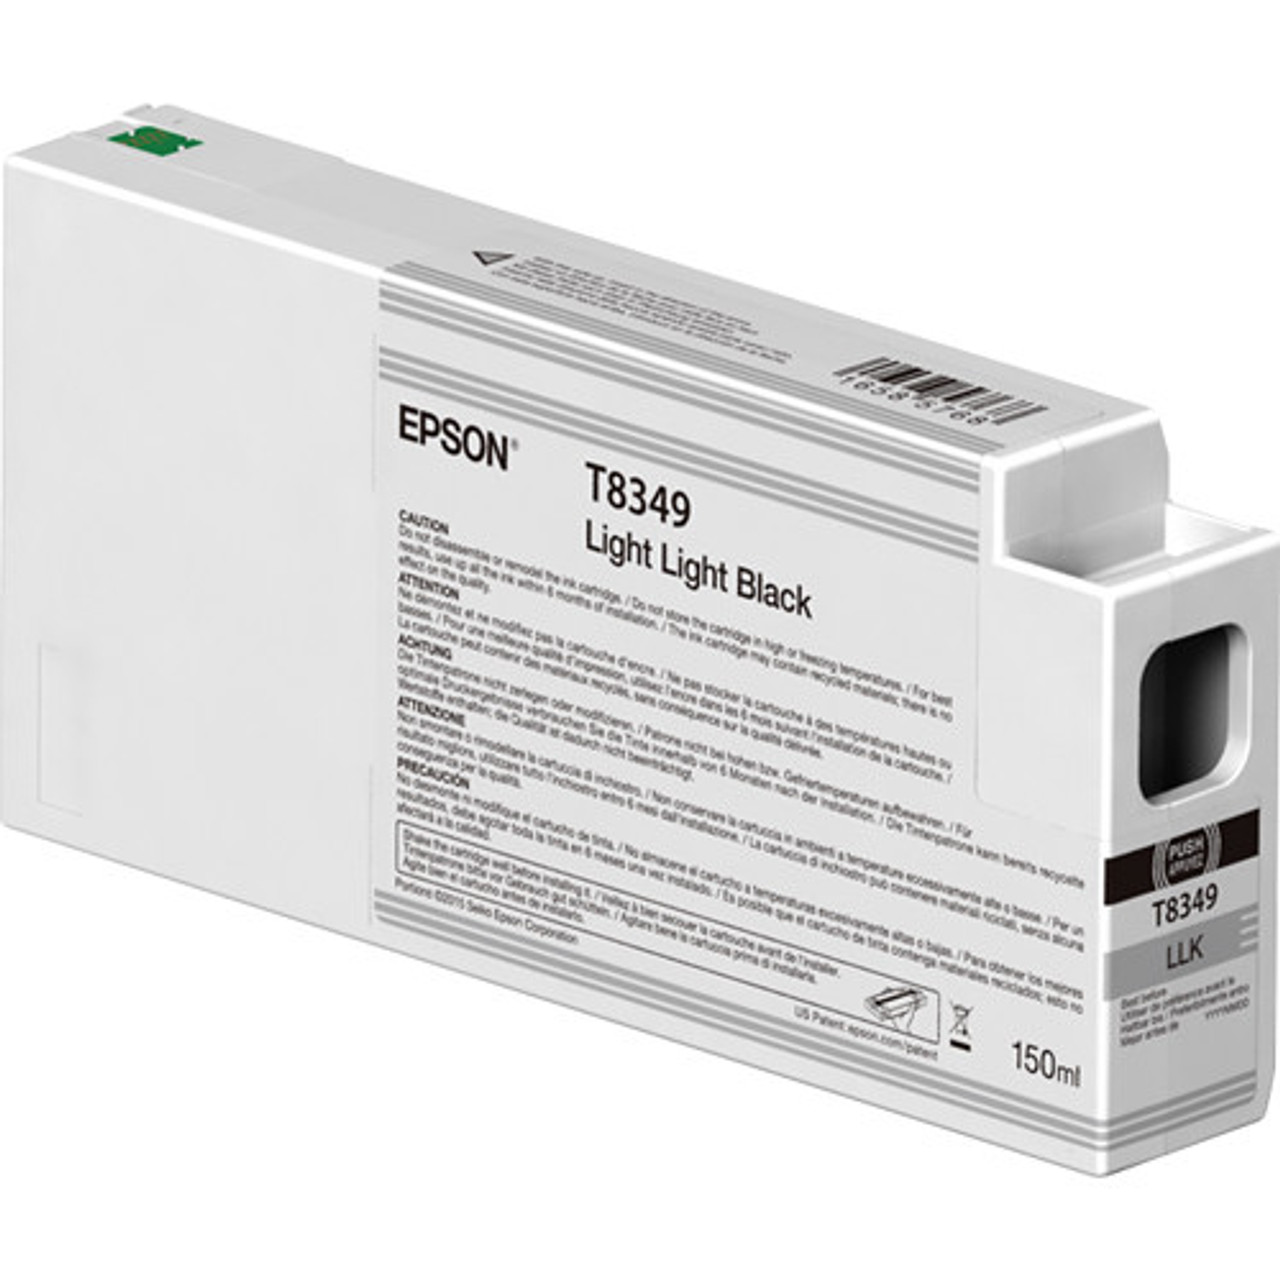 Epson T834900 Light Light Black Ink Cartridge, 150 mL